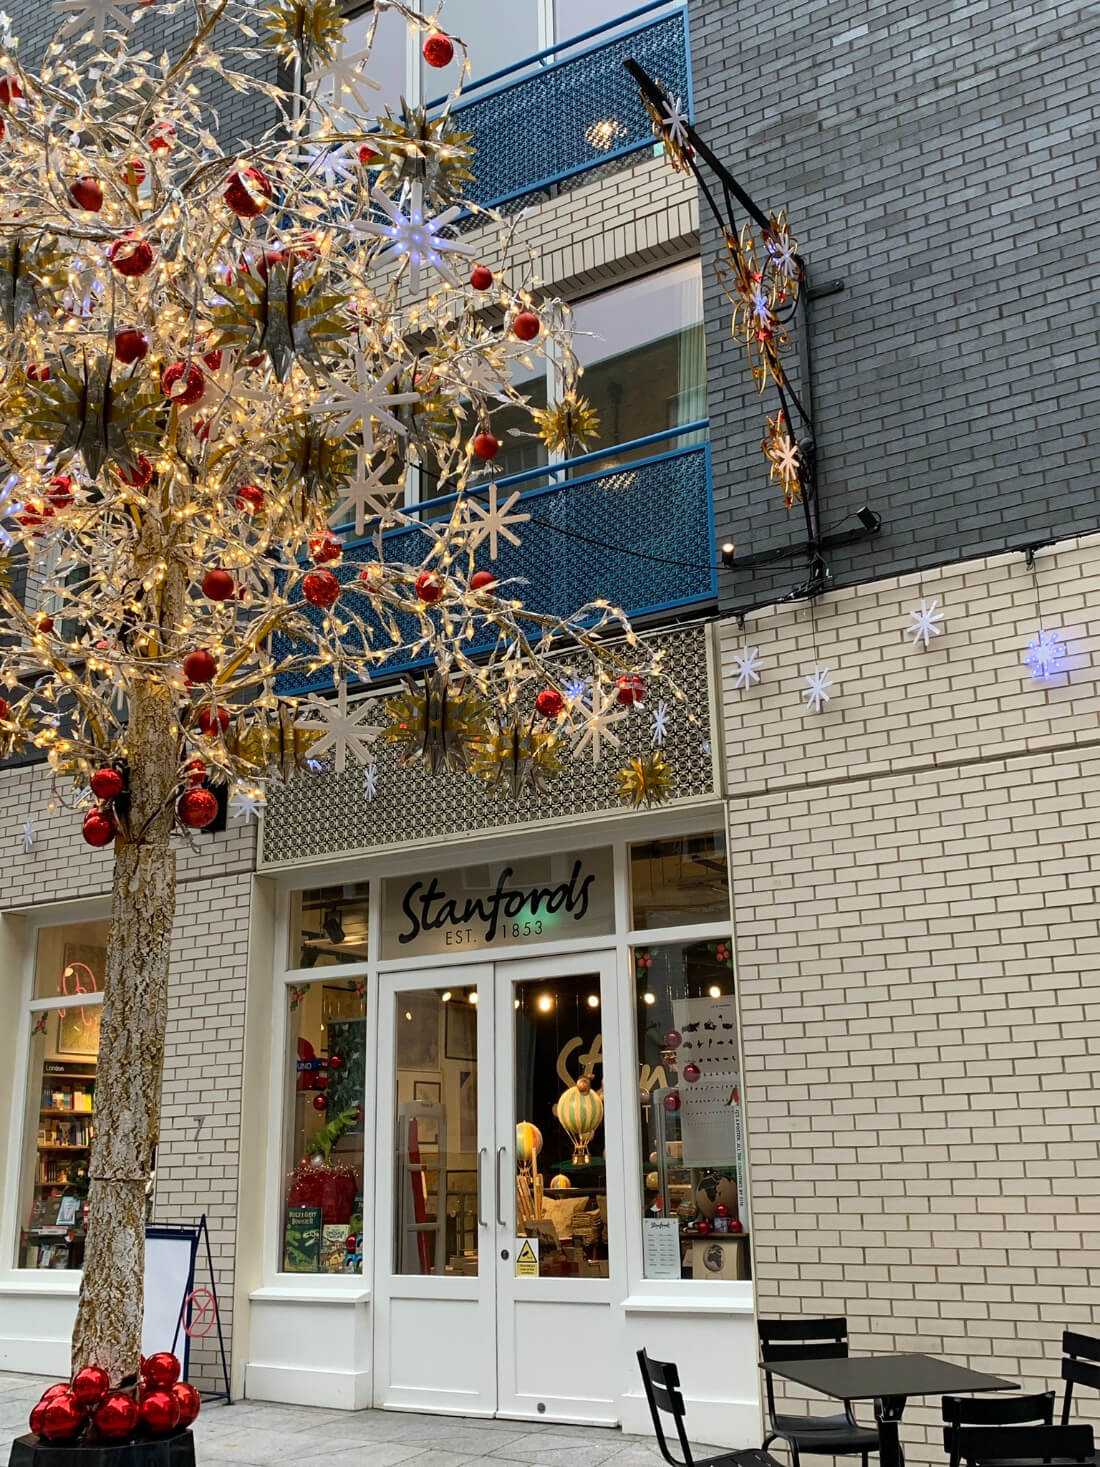 Christmas decor at Stanfords bookshop in London